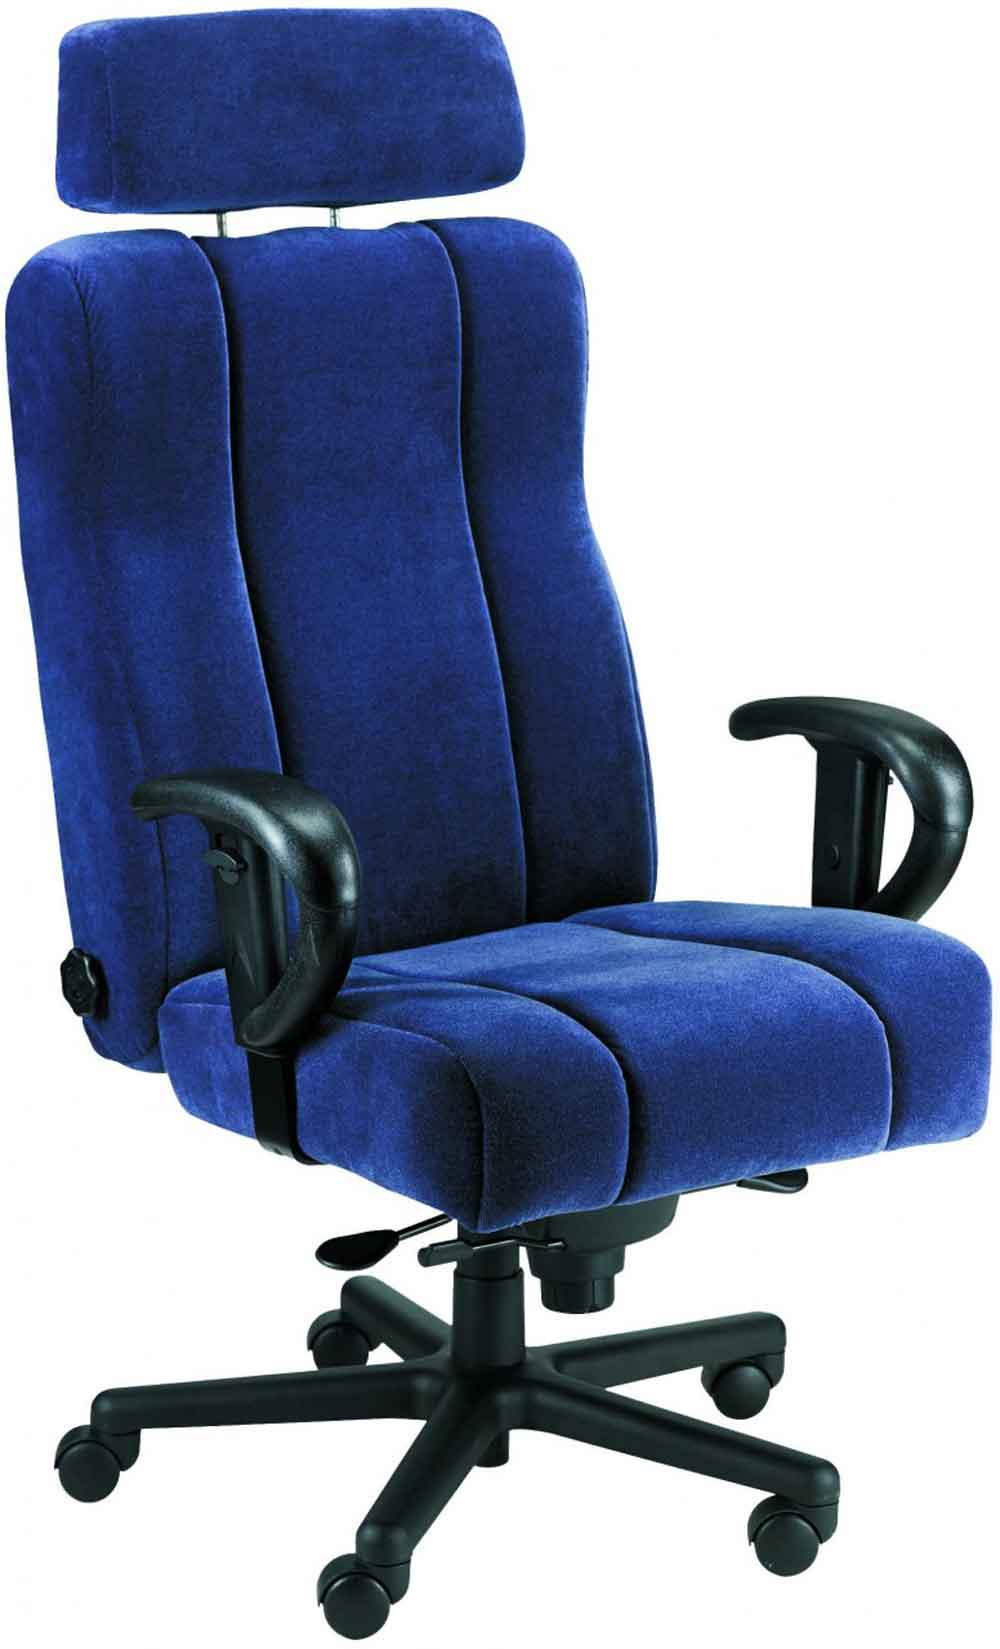 blue office chair with big and tall headrest